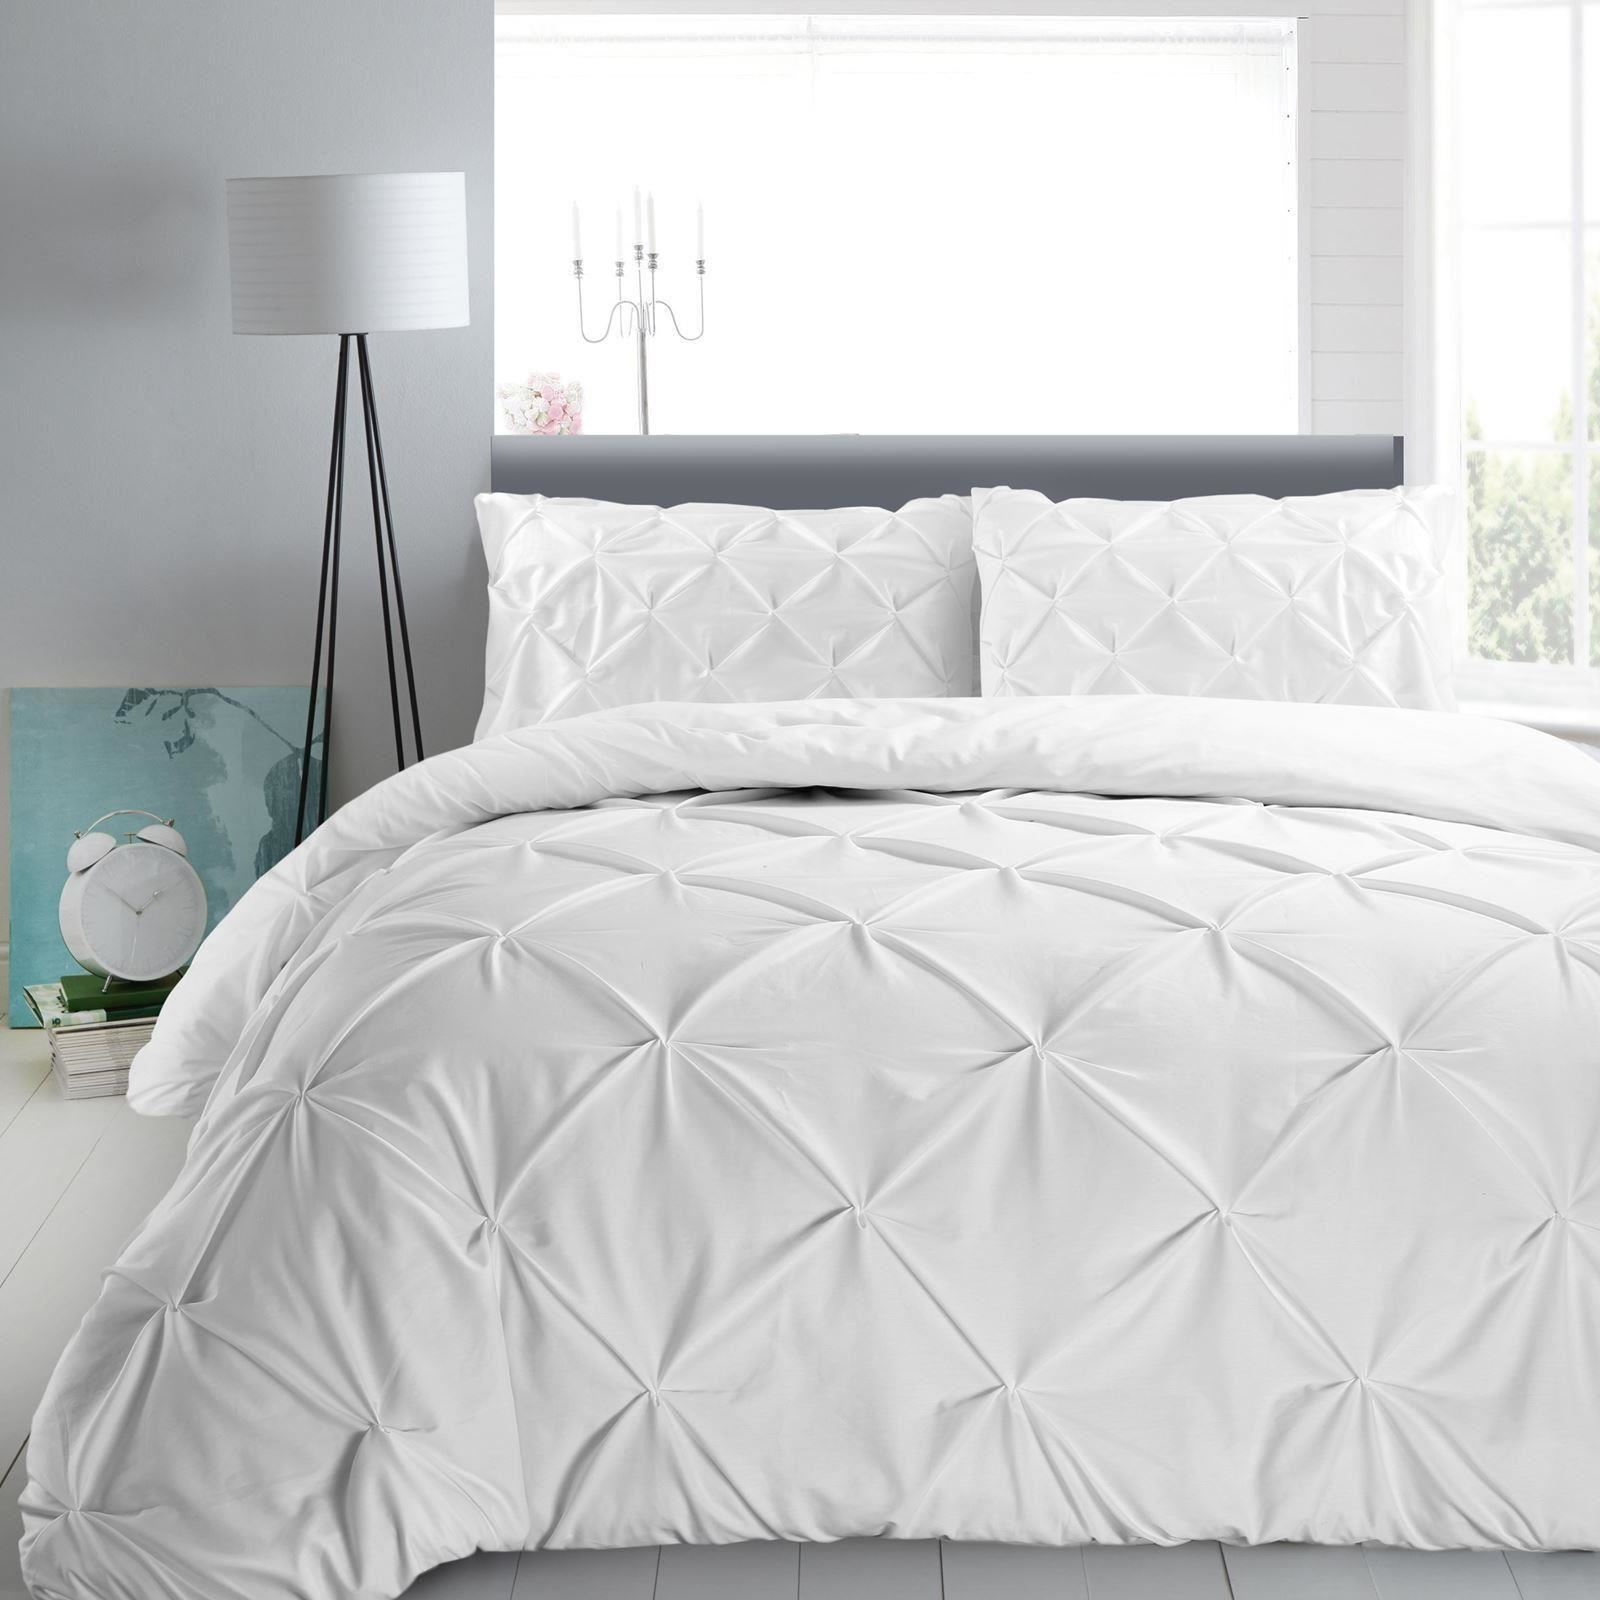 india premium classic in x low tc cover cotton online duvet linenwalas white prices amazon solid covers buy dp at